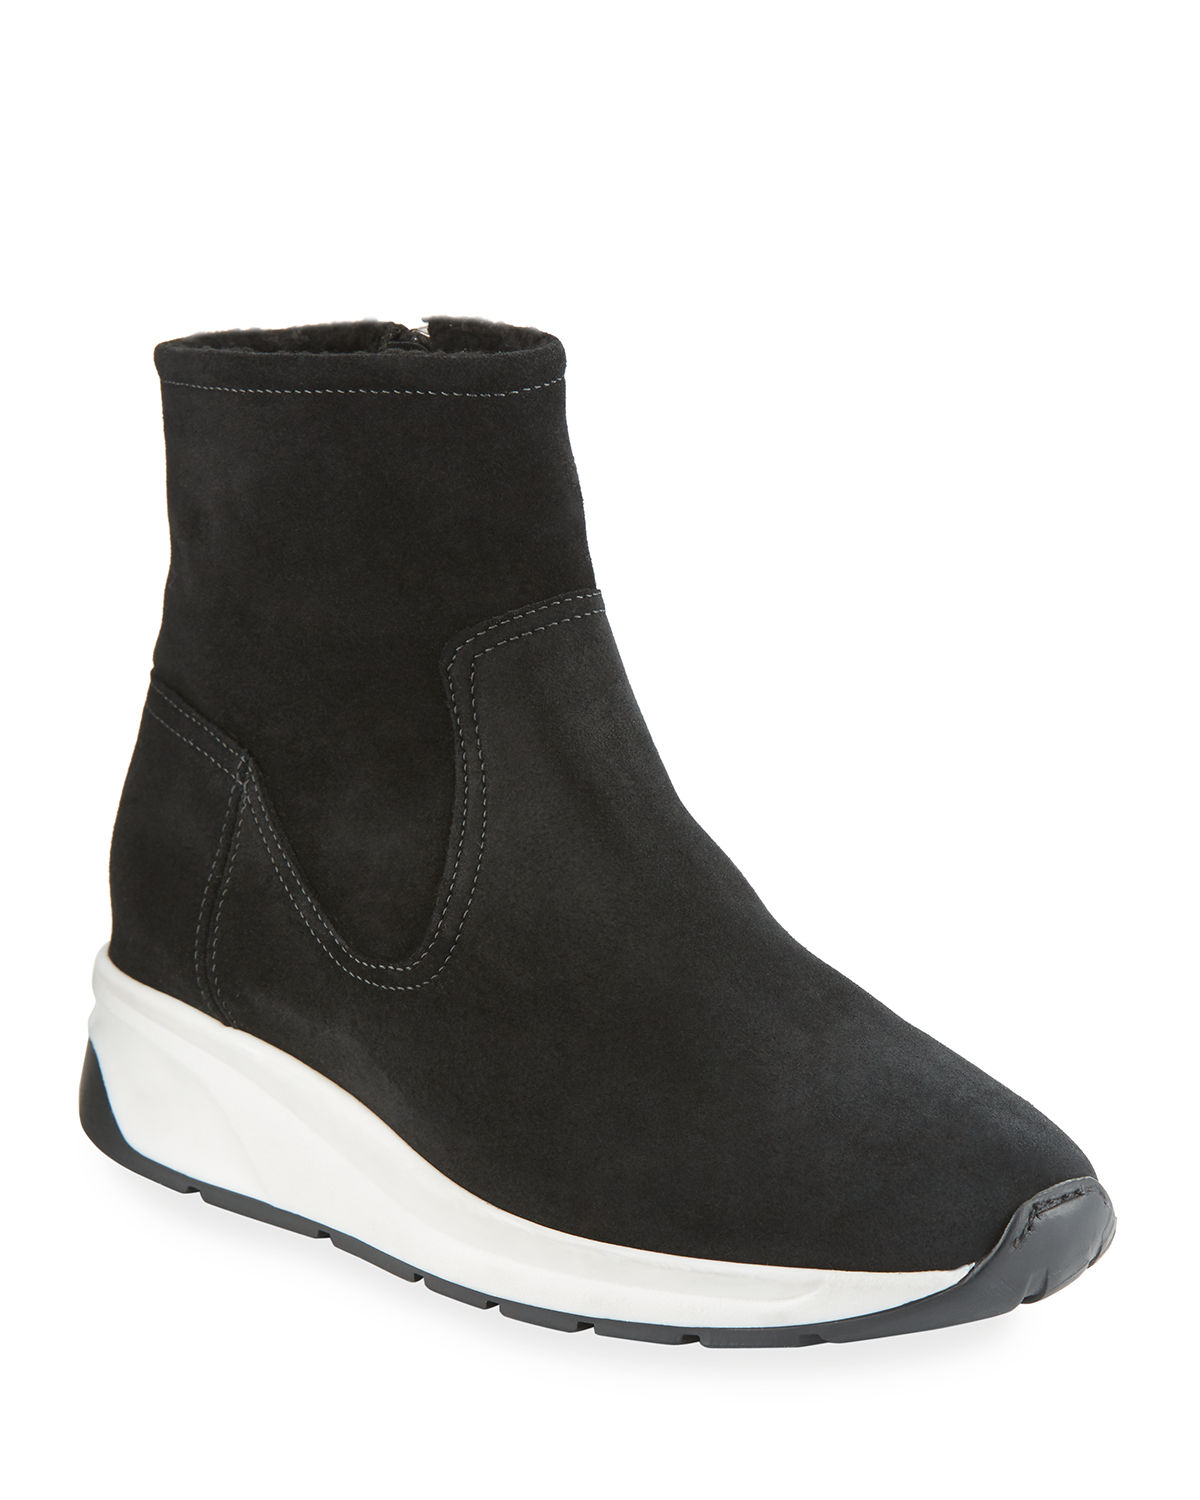 Aquatalia Sneakers BETTY HIGH-TOP SNEAKERS WITH SHEARLING LINING